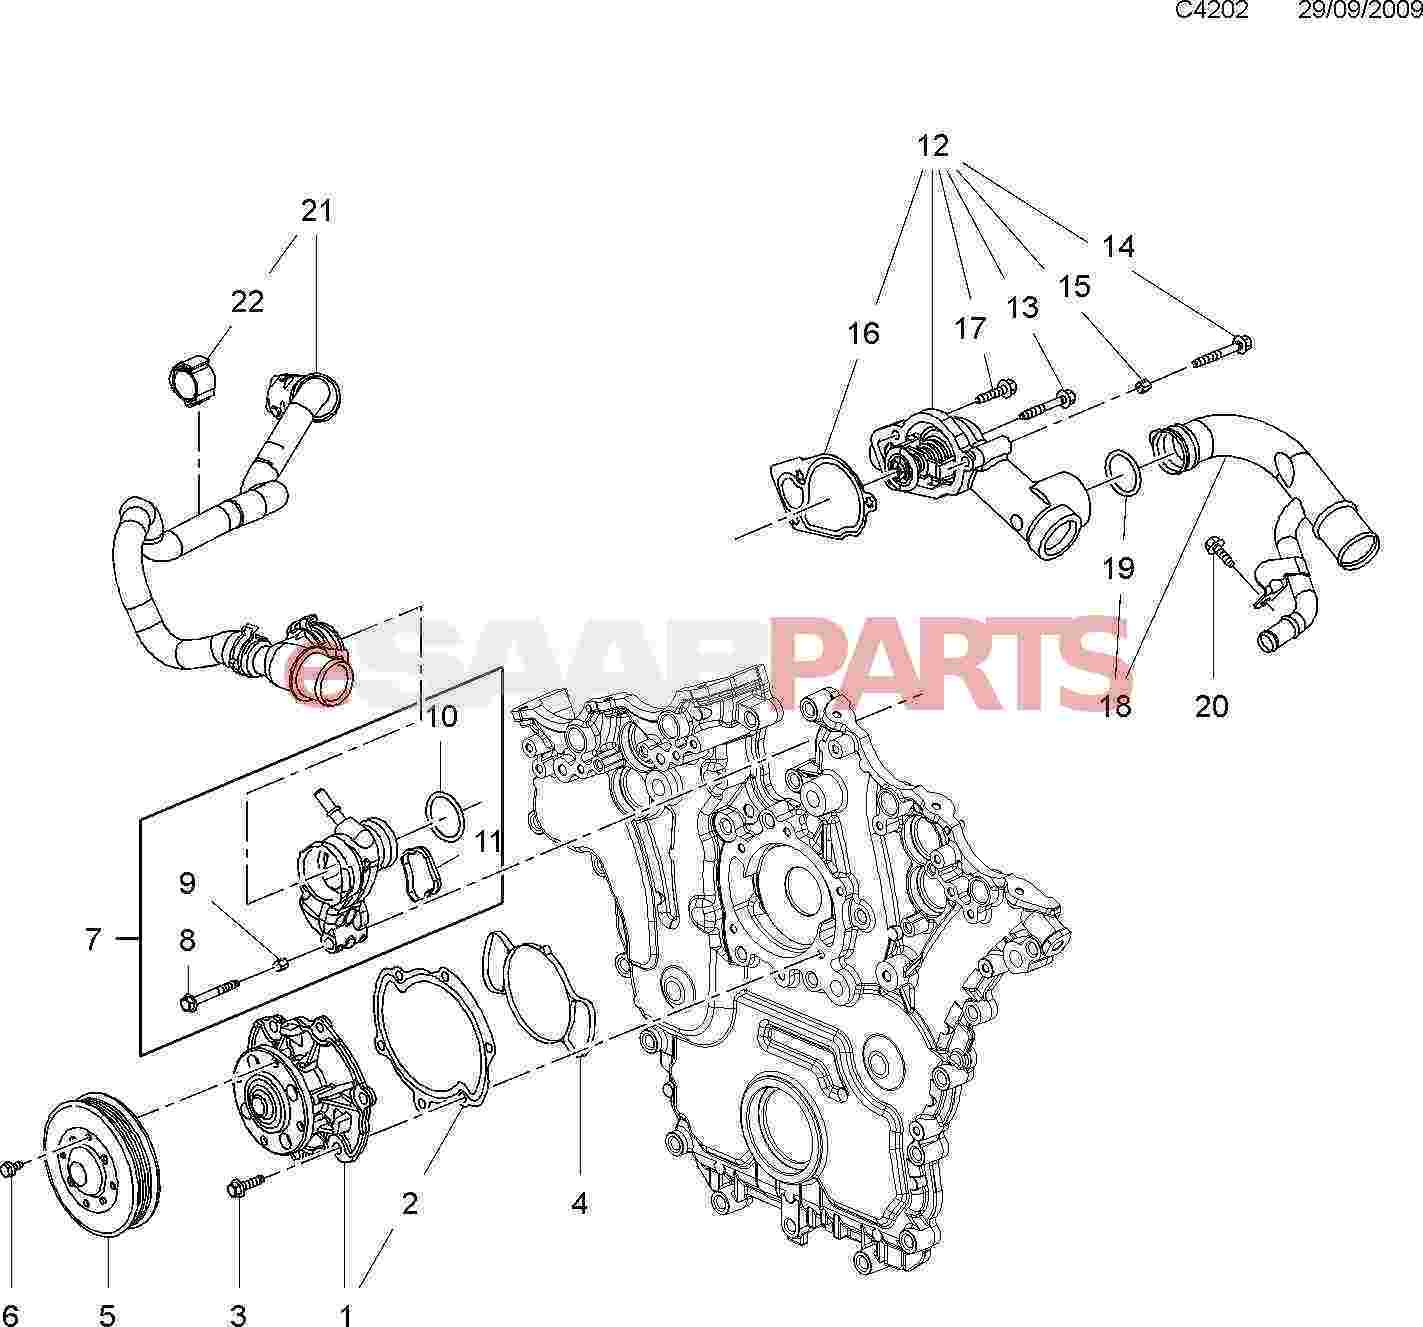 saab 900 water pump wiring diagrams